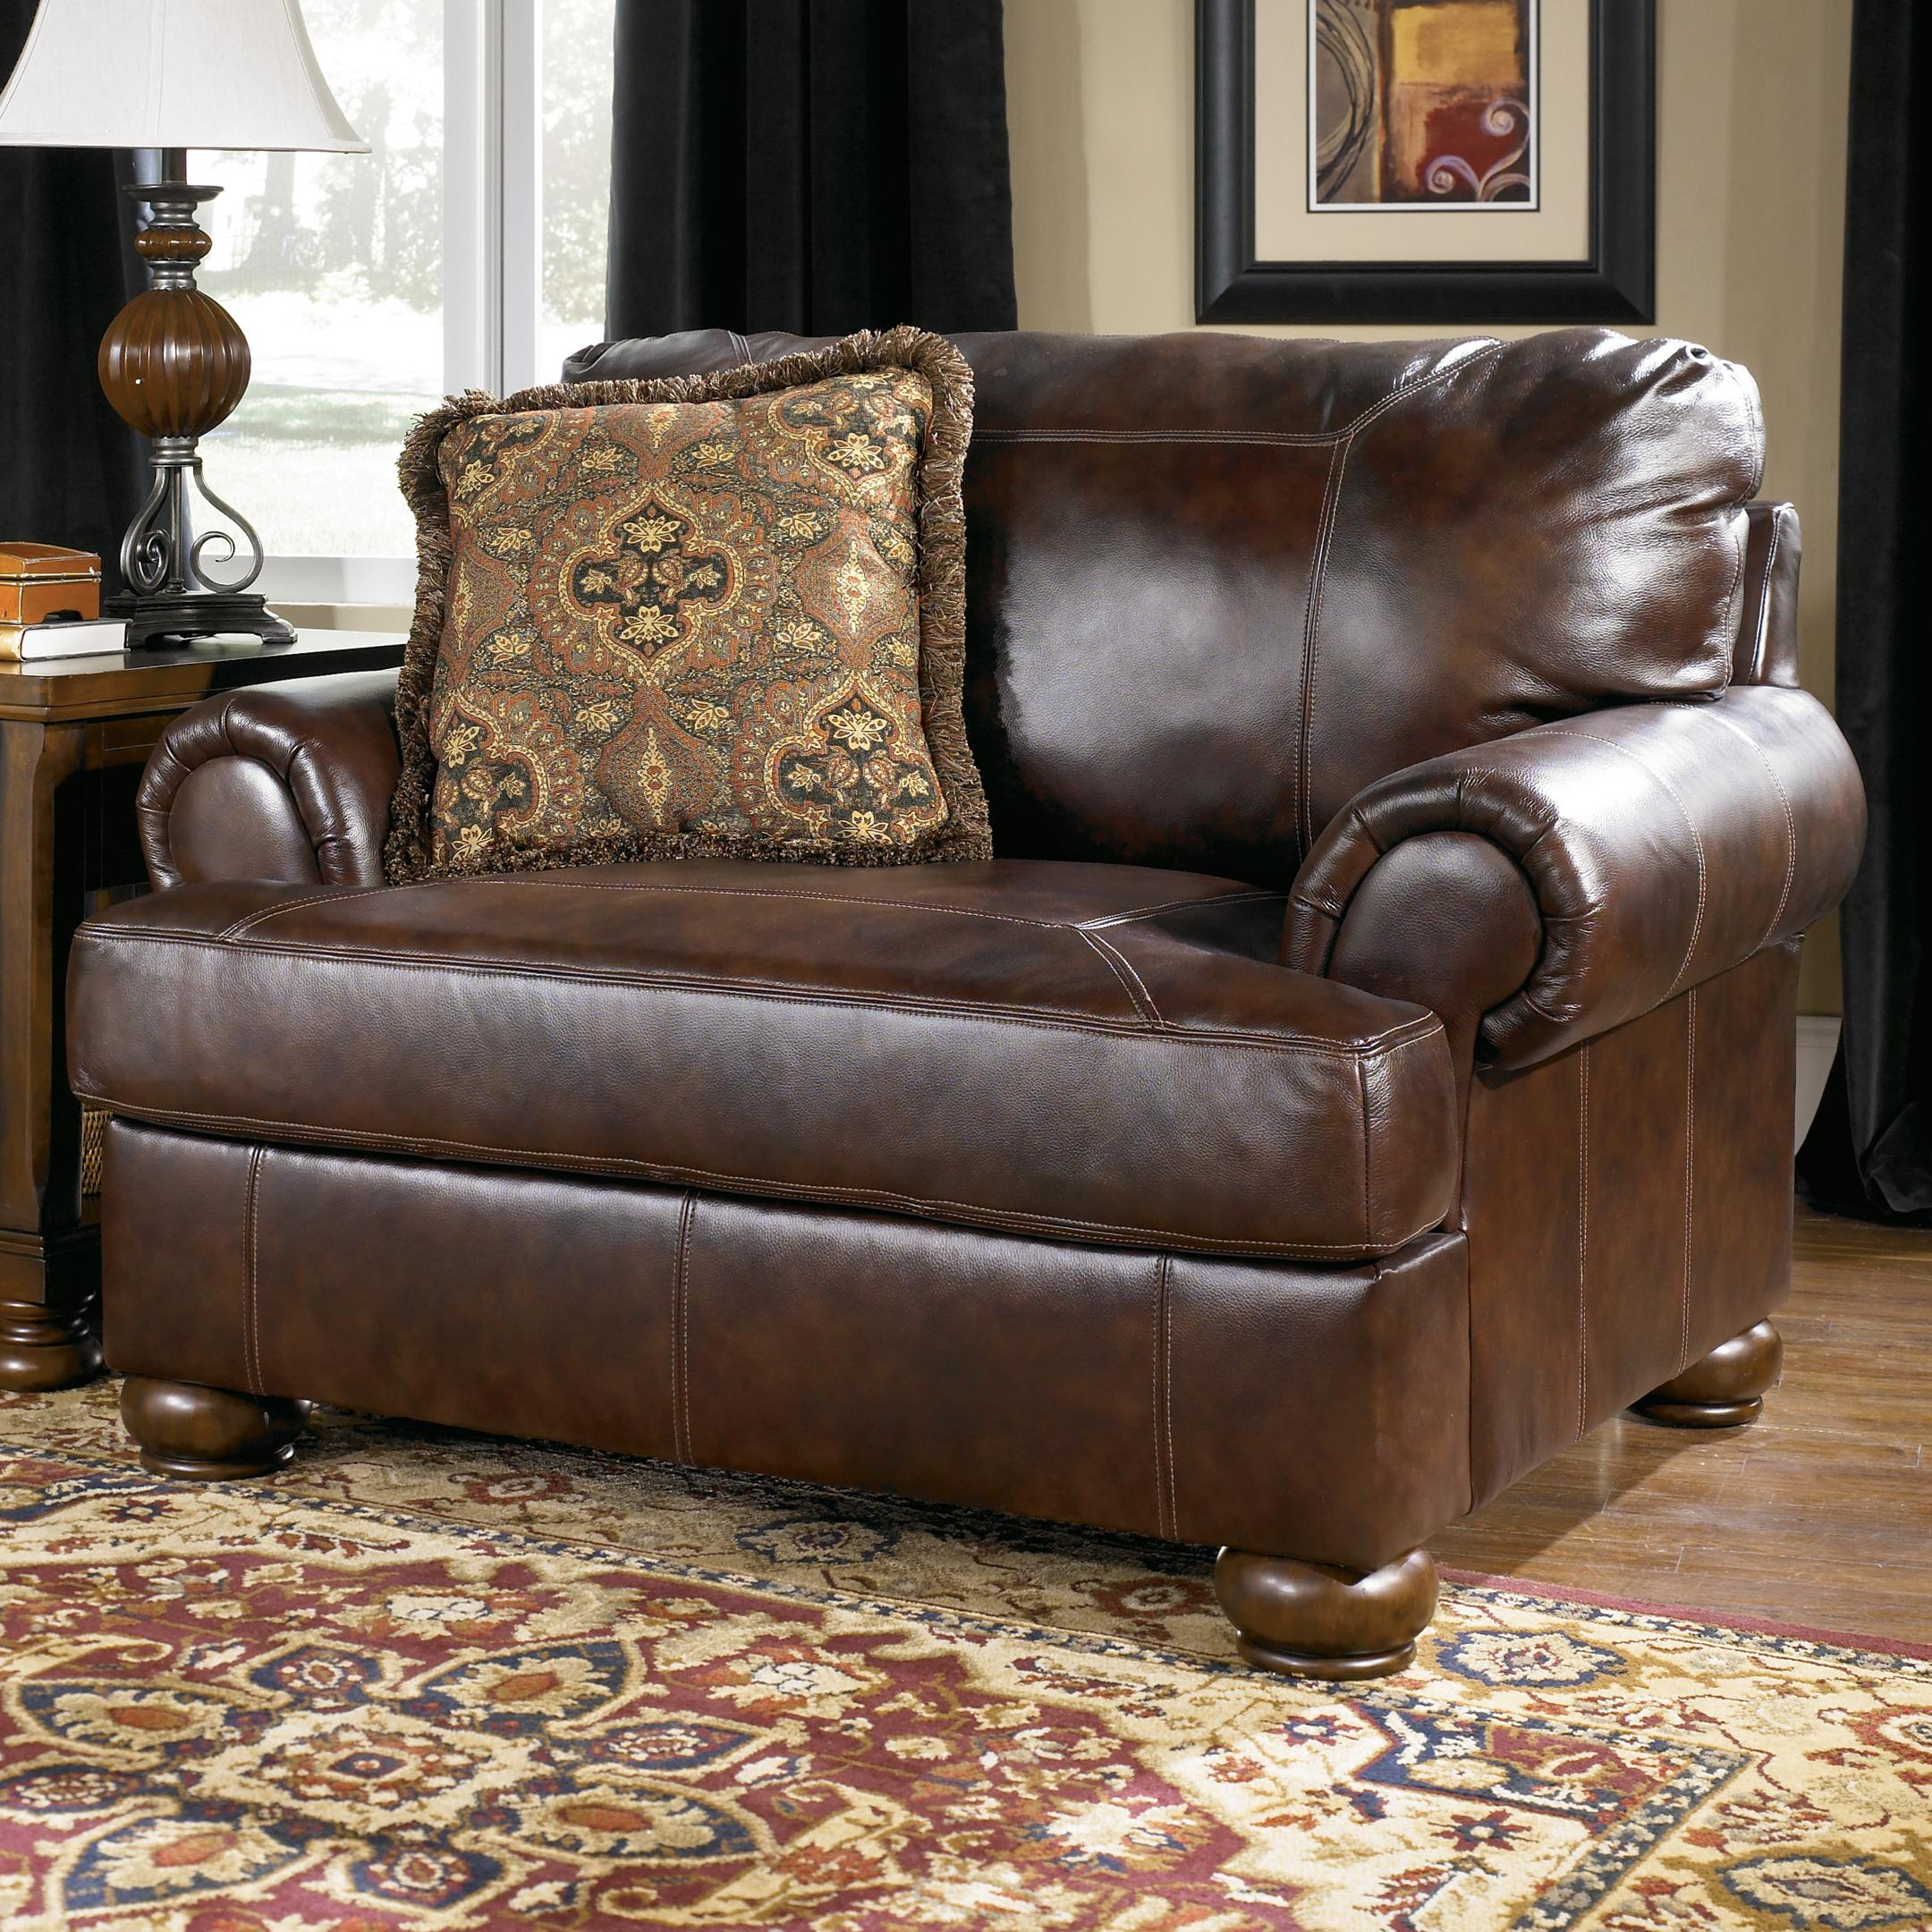 Signature Design By Ashley Axiom Walnut Traditional Upholstered Chair And A Half With Bun Wood